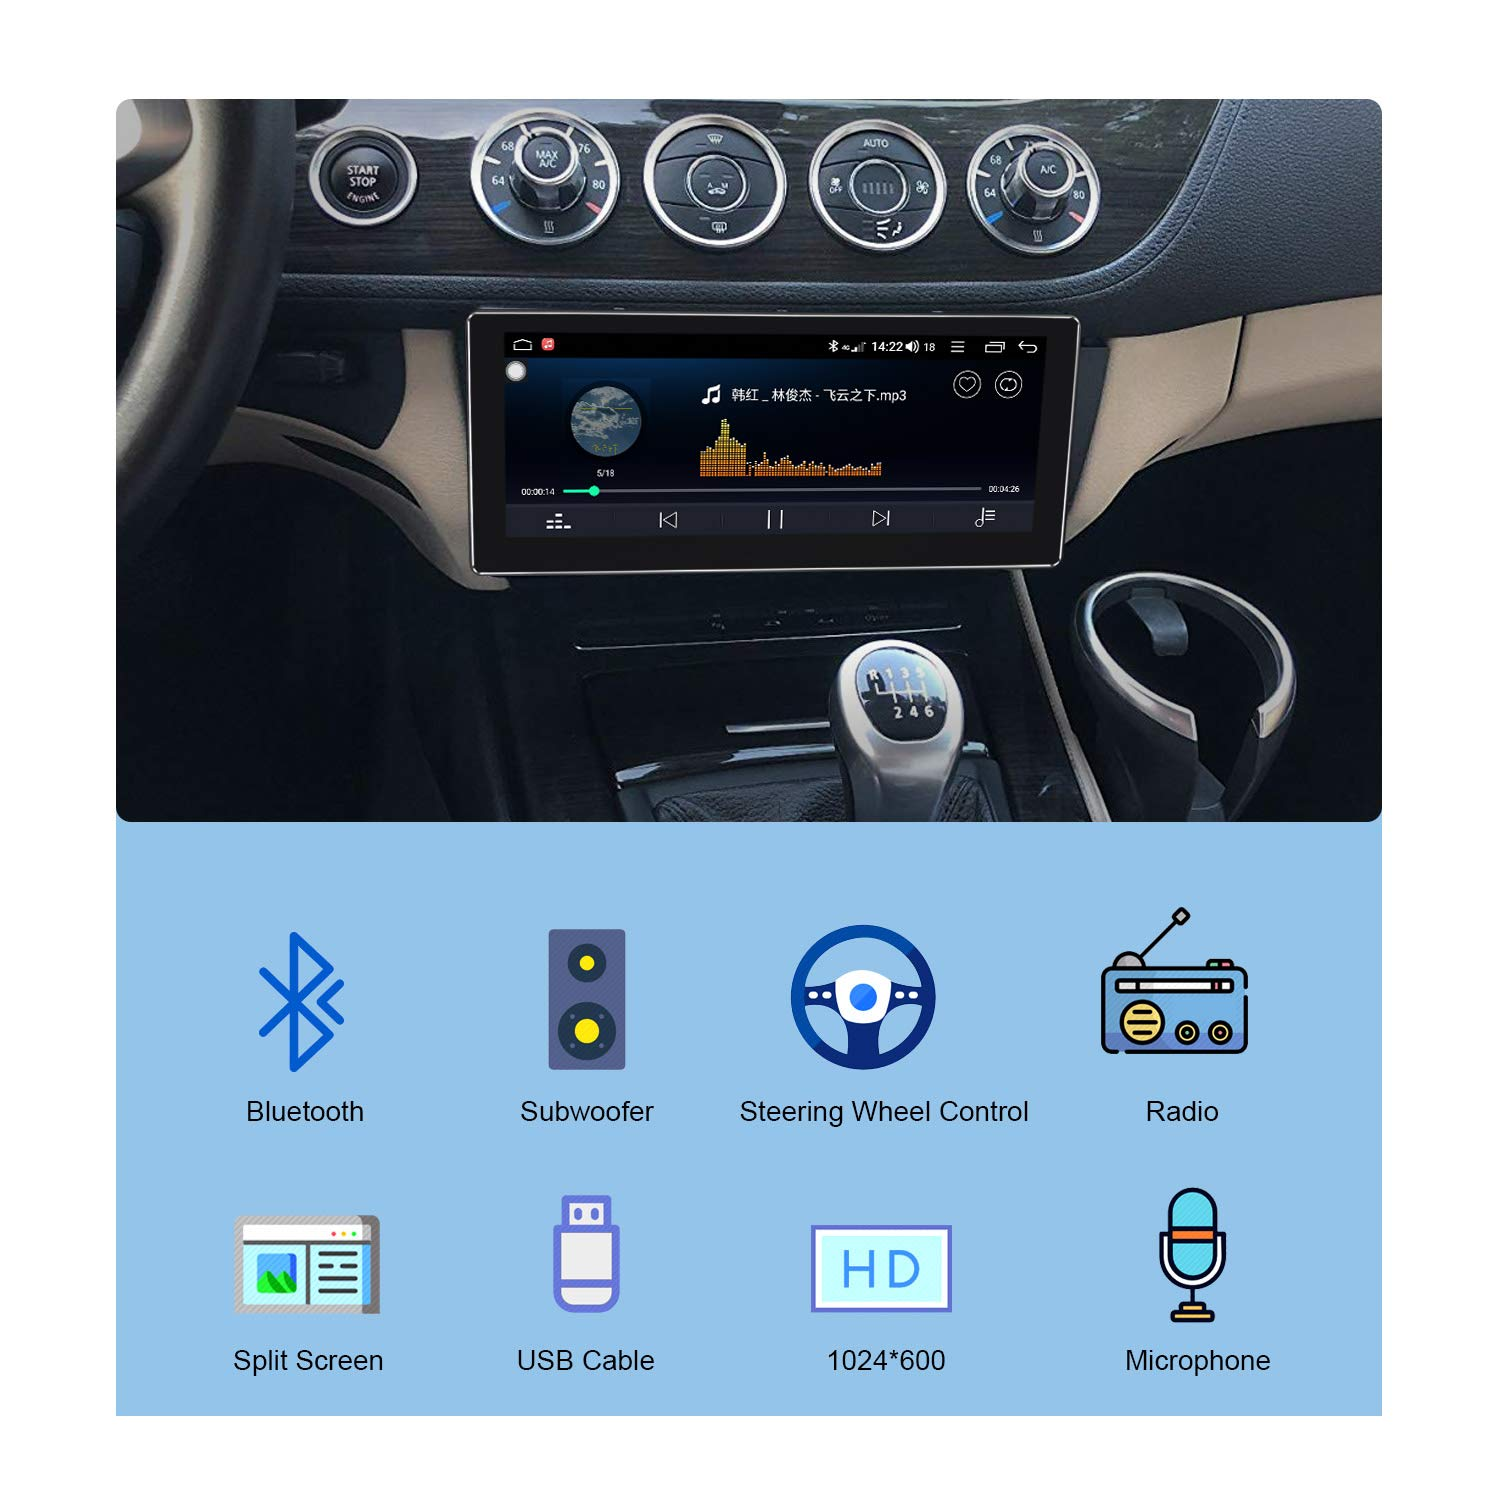 DSP 64GB Autoradio mit 4G LTE WiFi-Verbindung Android 8.1 Autoradio Fast Boot JOYFORWA 7 Zoll Single Din 4GB SPDIF Android Auto